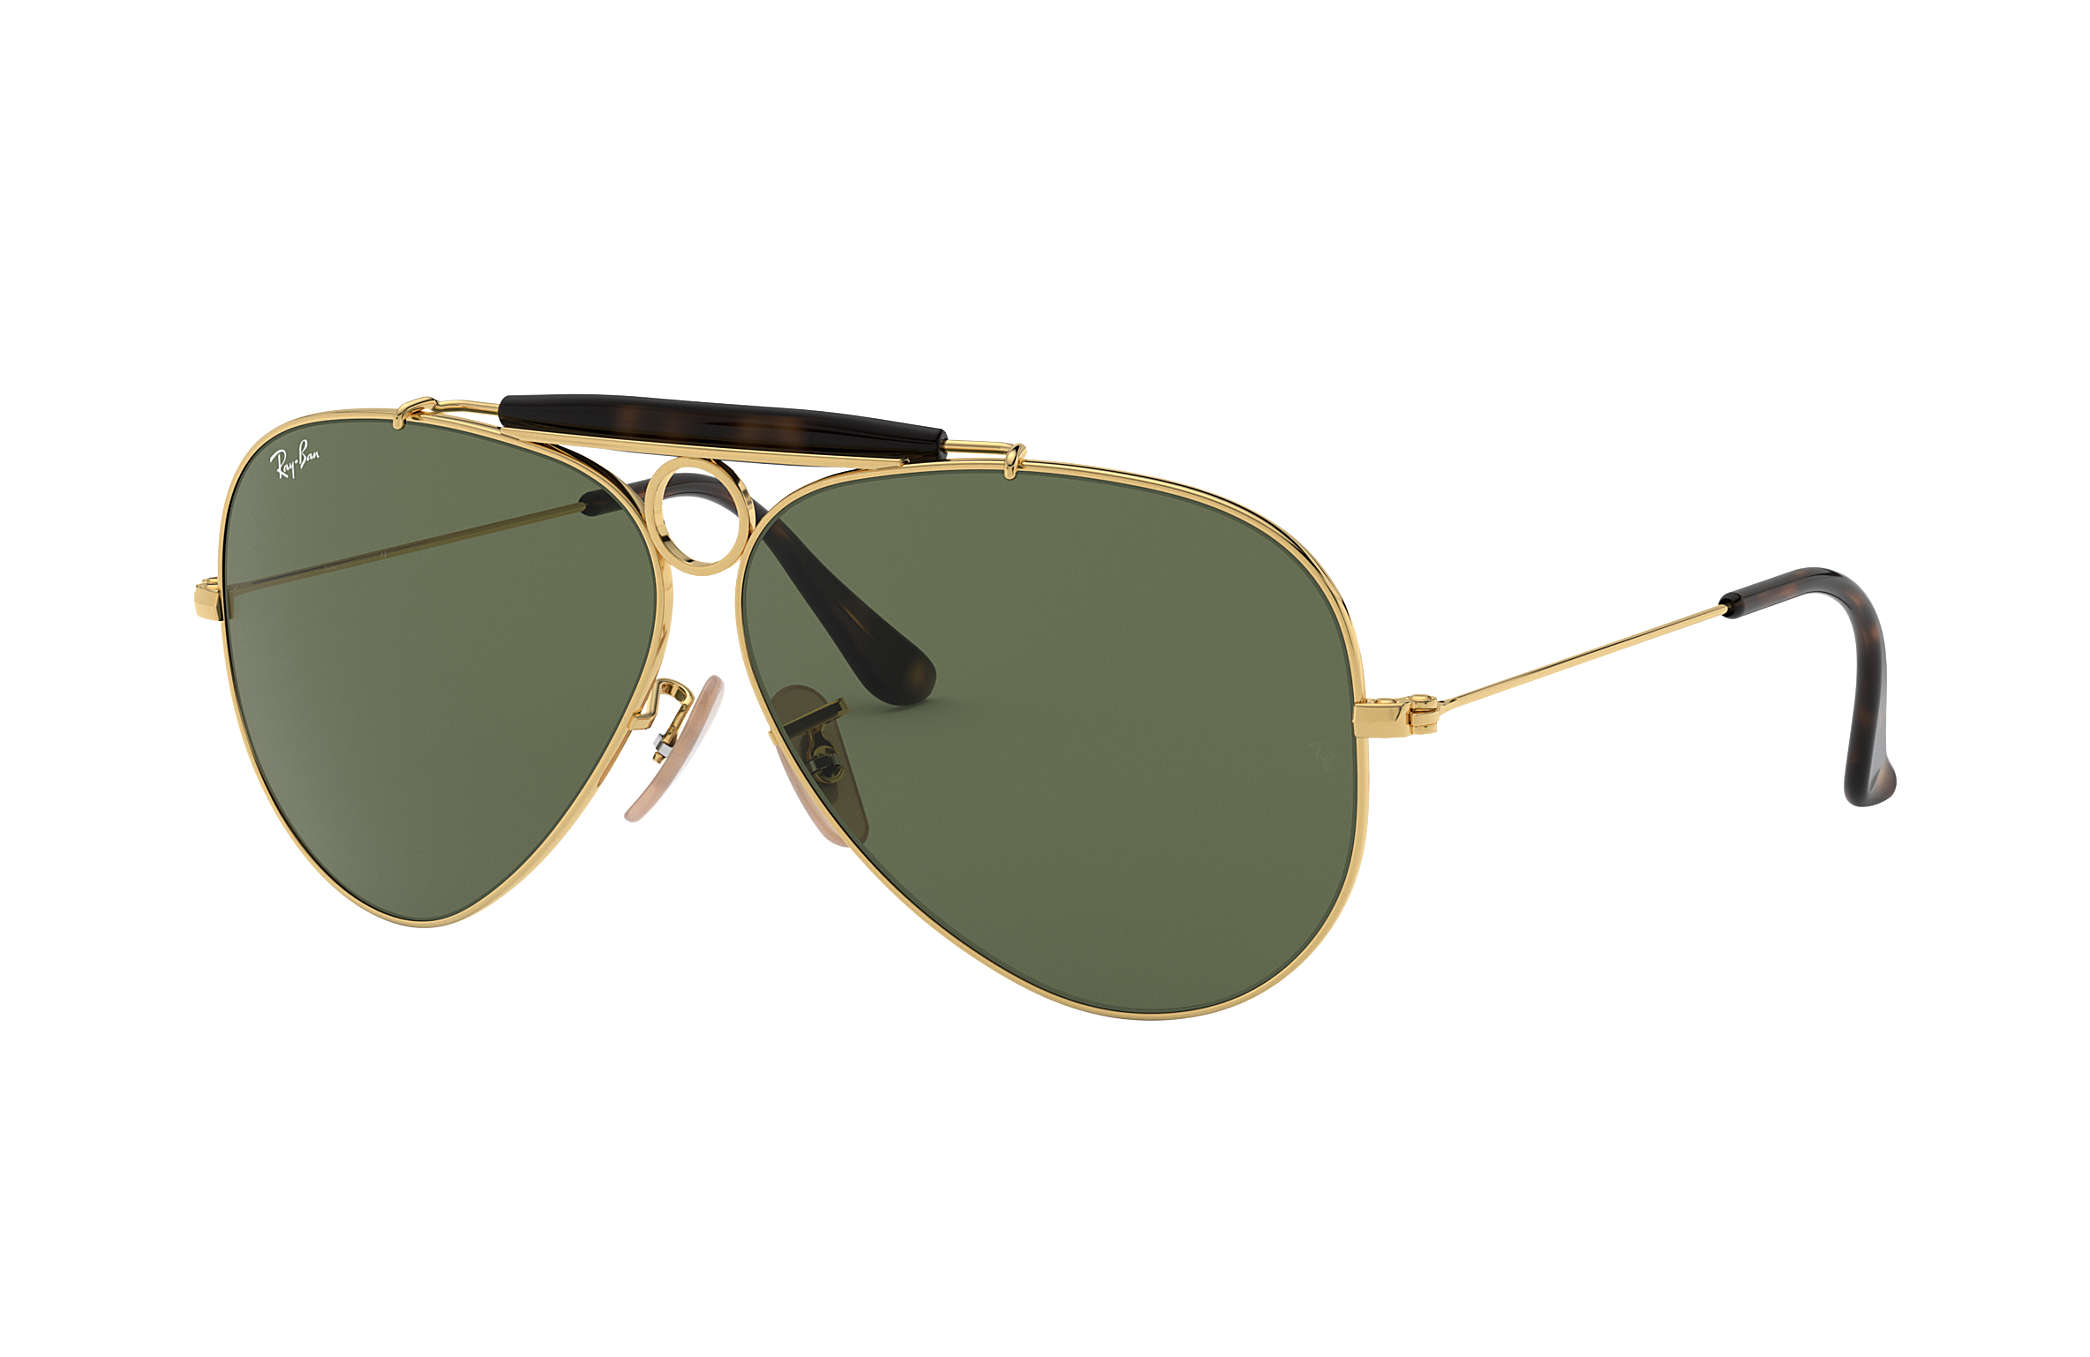 ray ban aviator sunglasses price in hyderabad